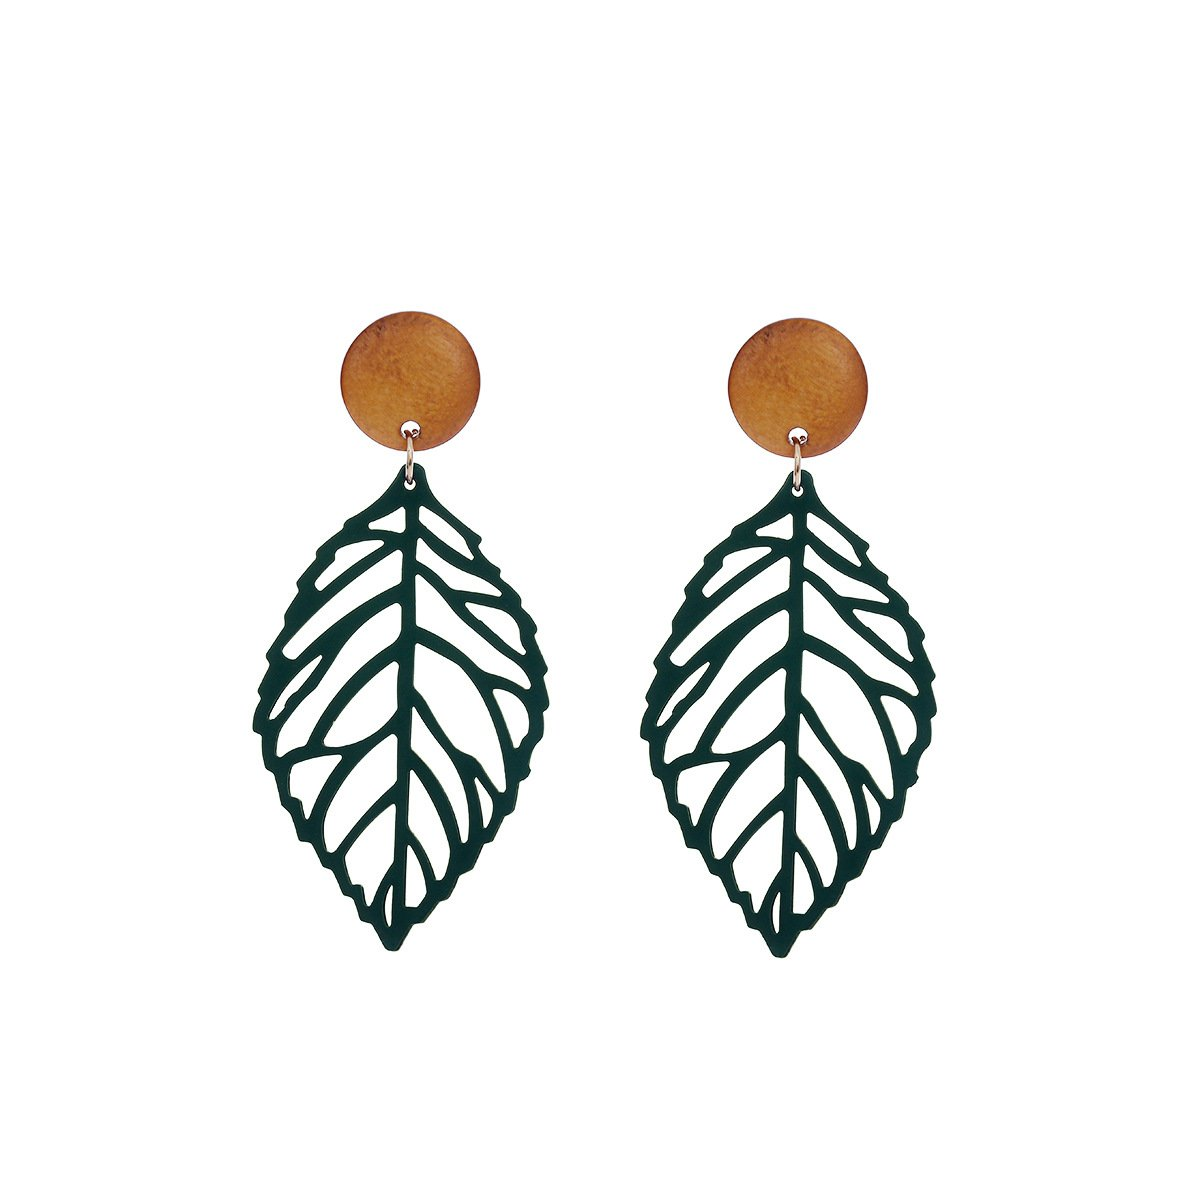 Leaf Pendants Earrings for Girls Nature style Hollow Statement Drop Earrings Fashion Jewelry (Green/1Pair)